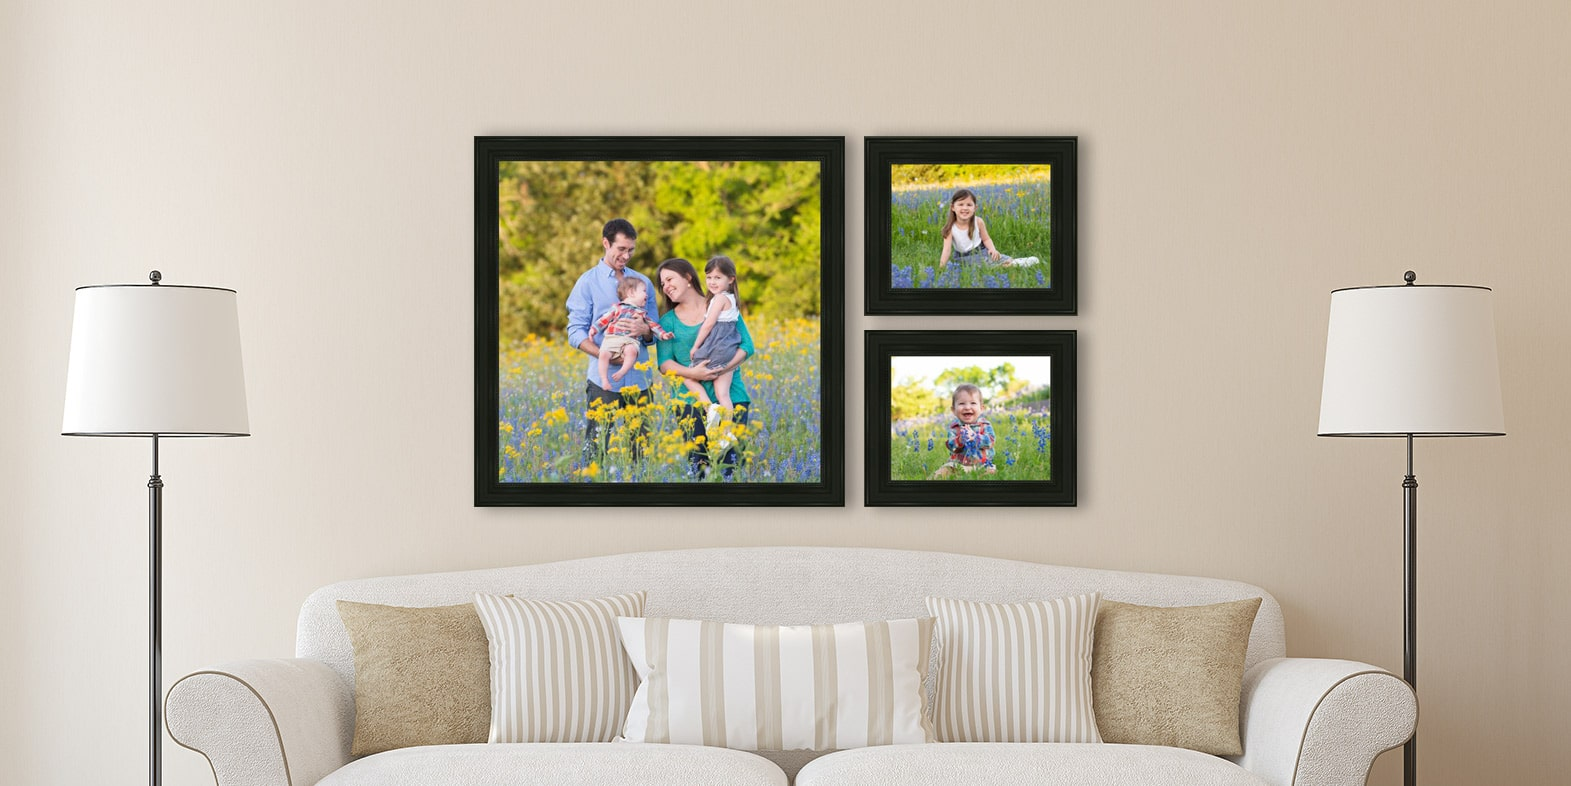 Family photographer: Hand crafted family portraits in a bluebonnet field made by Flint Photography near Katy, Tx.